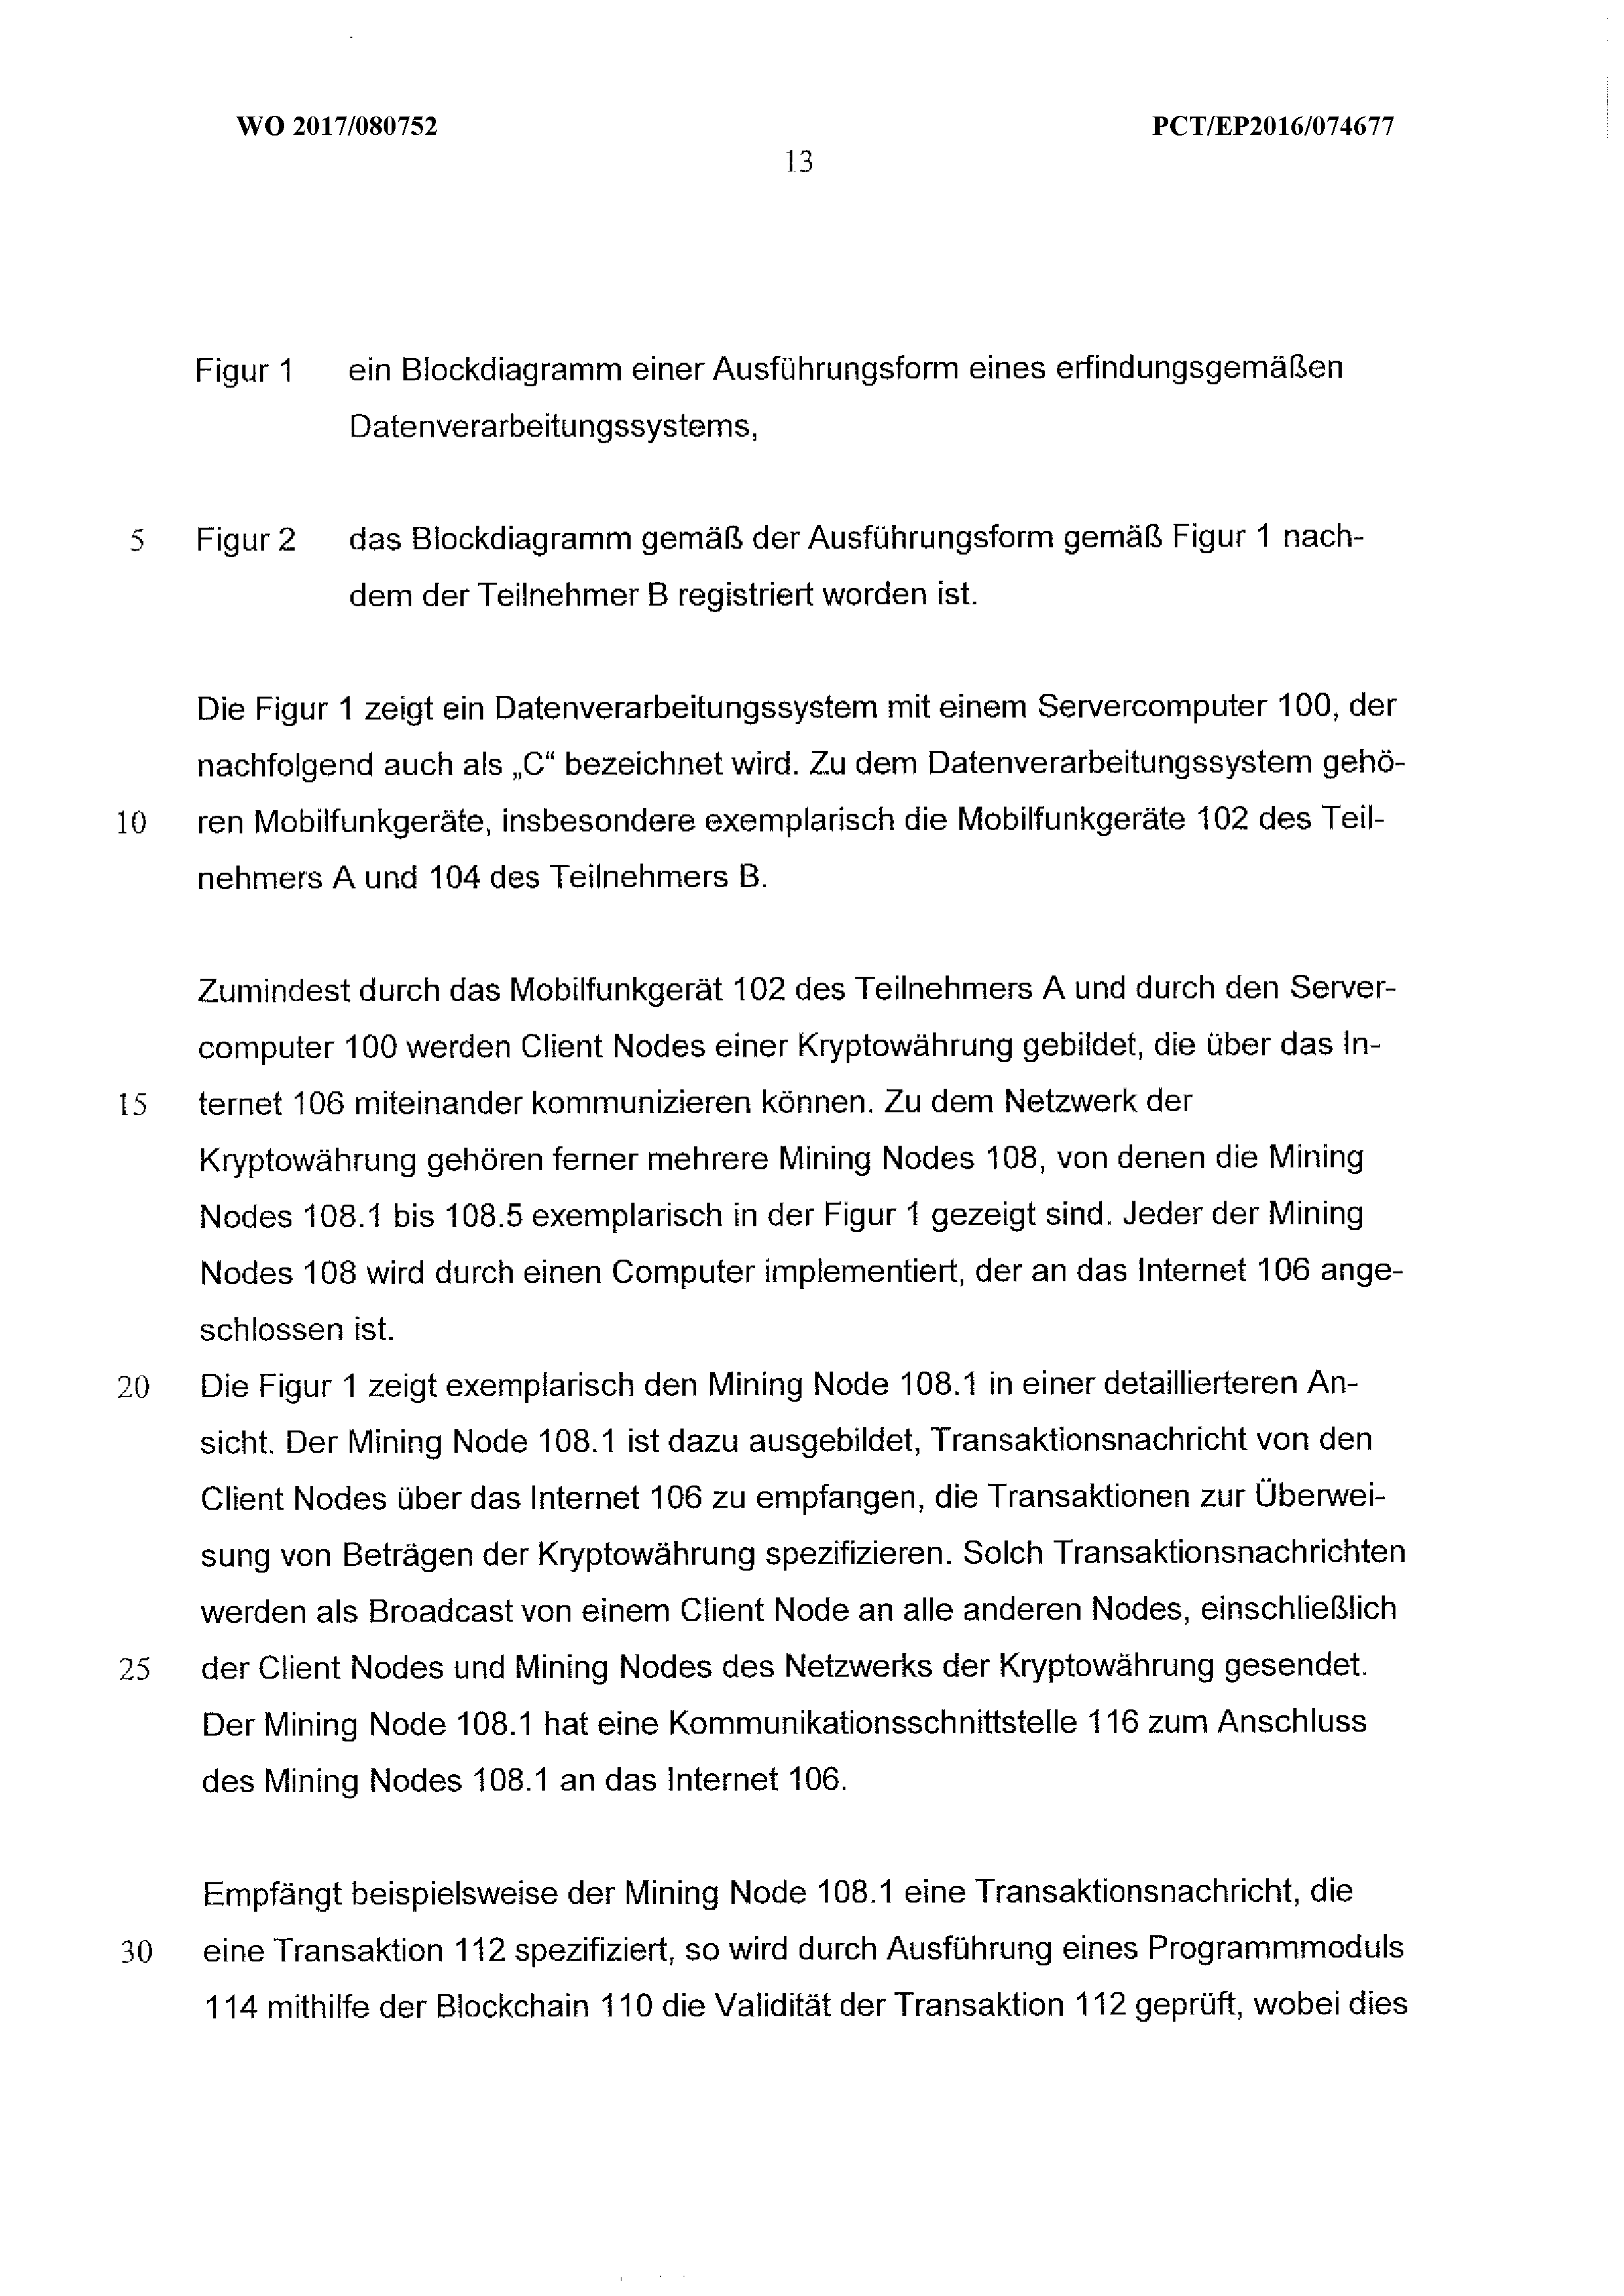 WO 2017/080752 A1 - Electronic Payment Method And Server Computer ...